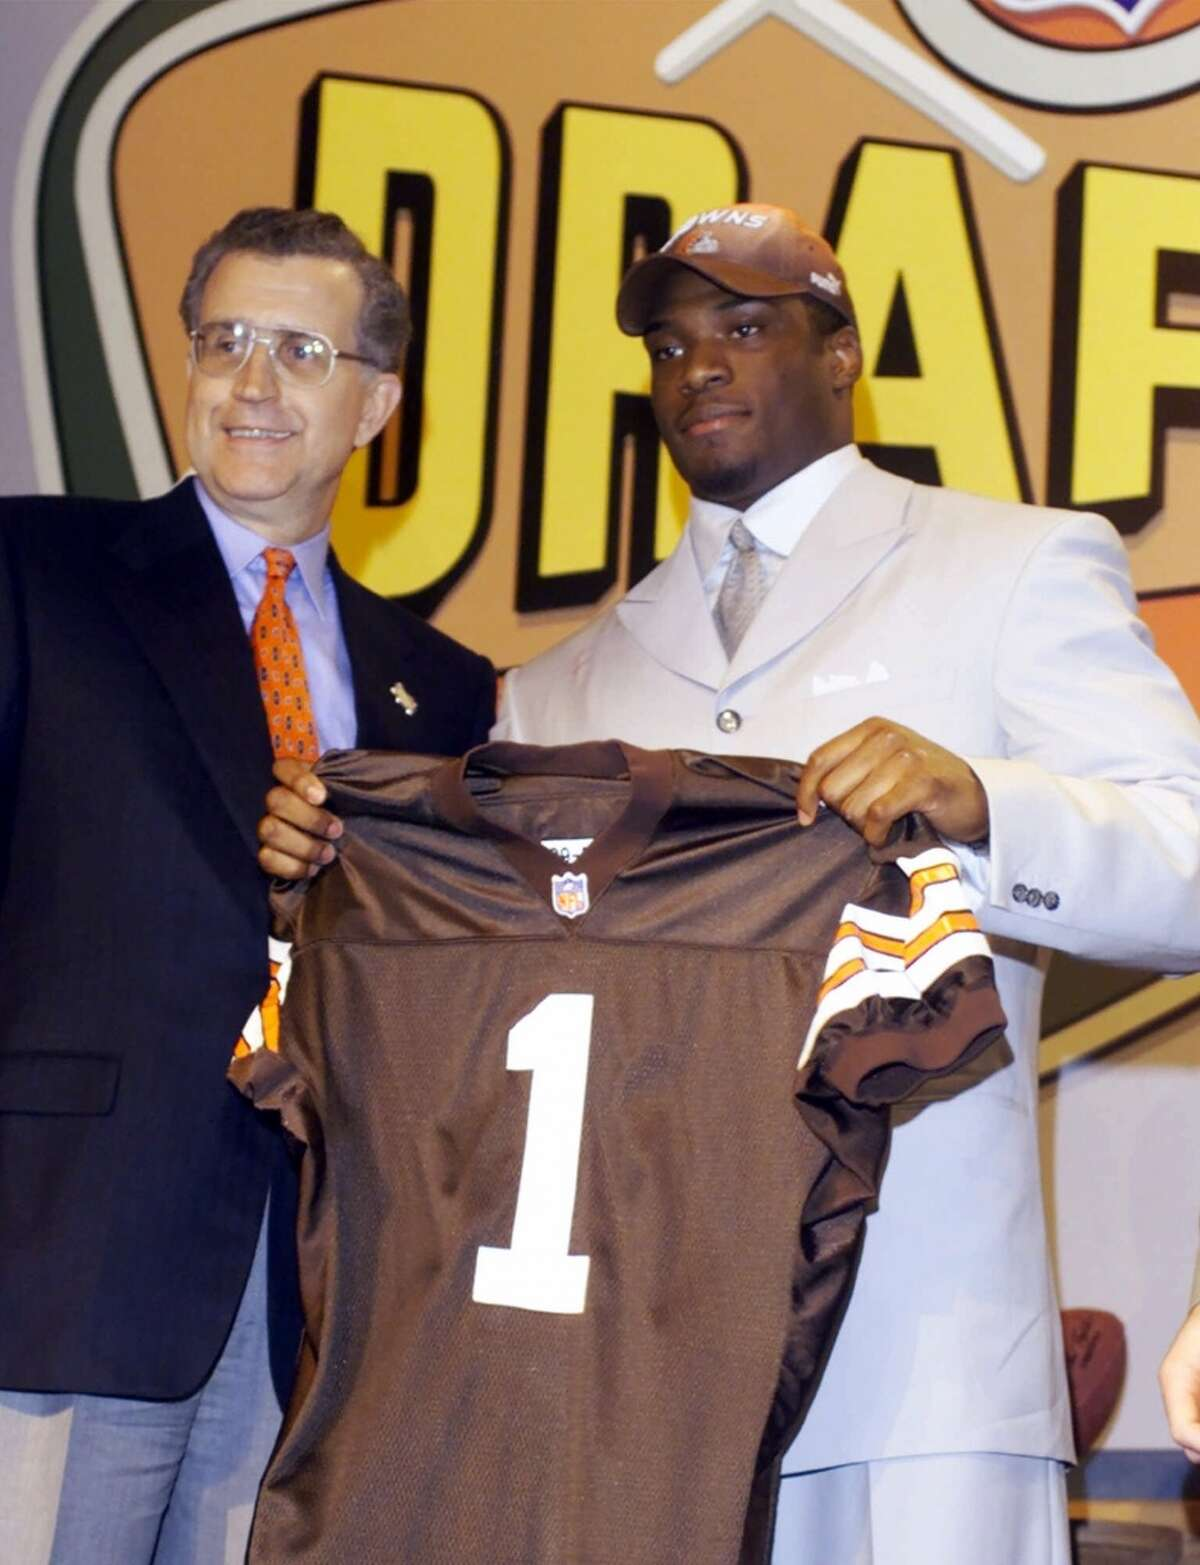 2000: Courtney Brown, DE, Browns Brown, who like Clowney is from South Carolina, played in every game his rookie season, then because of injuries missed more games than he played for the rest of his career. But the Penn State product had 69 tackles and 4 ½ sacks that first season, and after sitting out the first six games in 2001 with a knee injury, he returned with six tackles, three sacks, two pass deflections and a 25-yard fumble return for a touchdown in the seventh game.